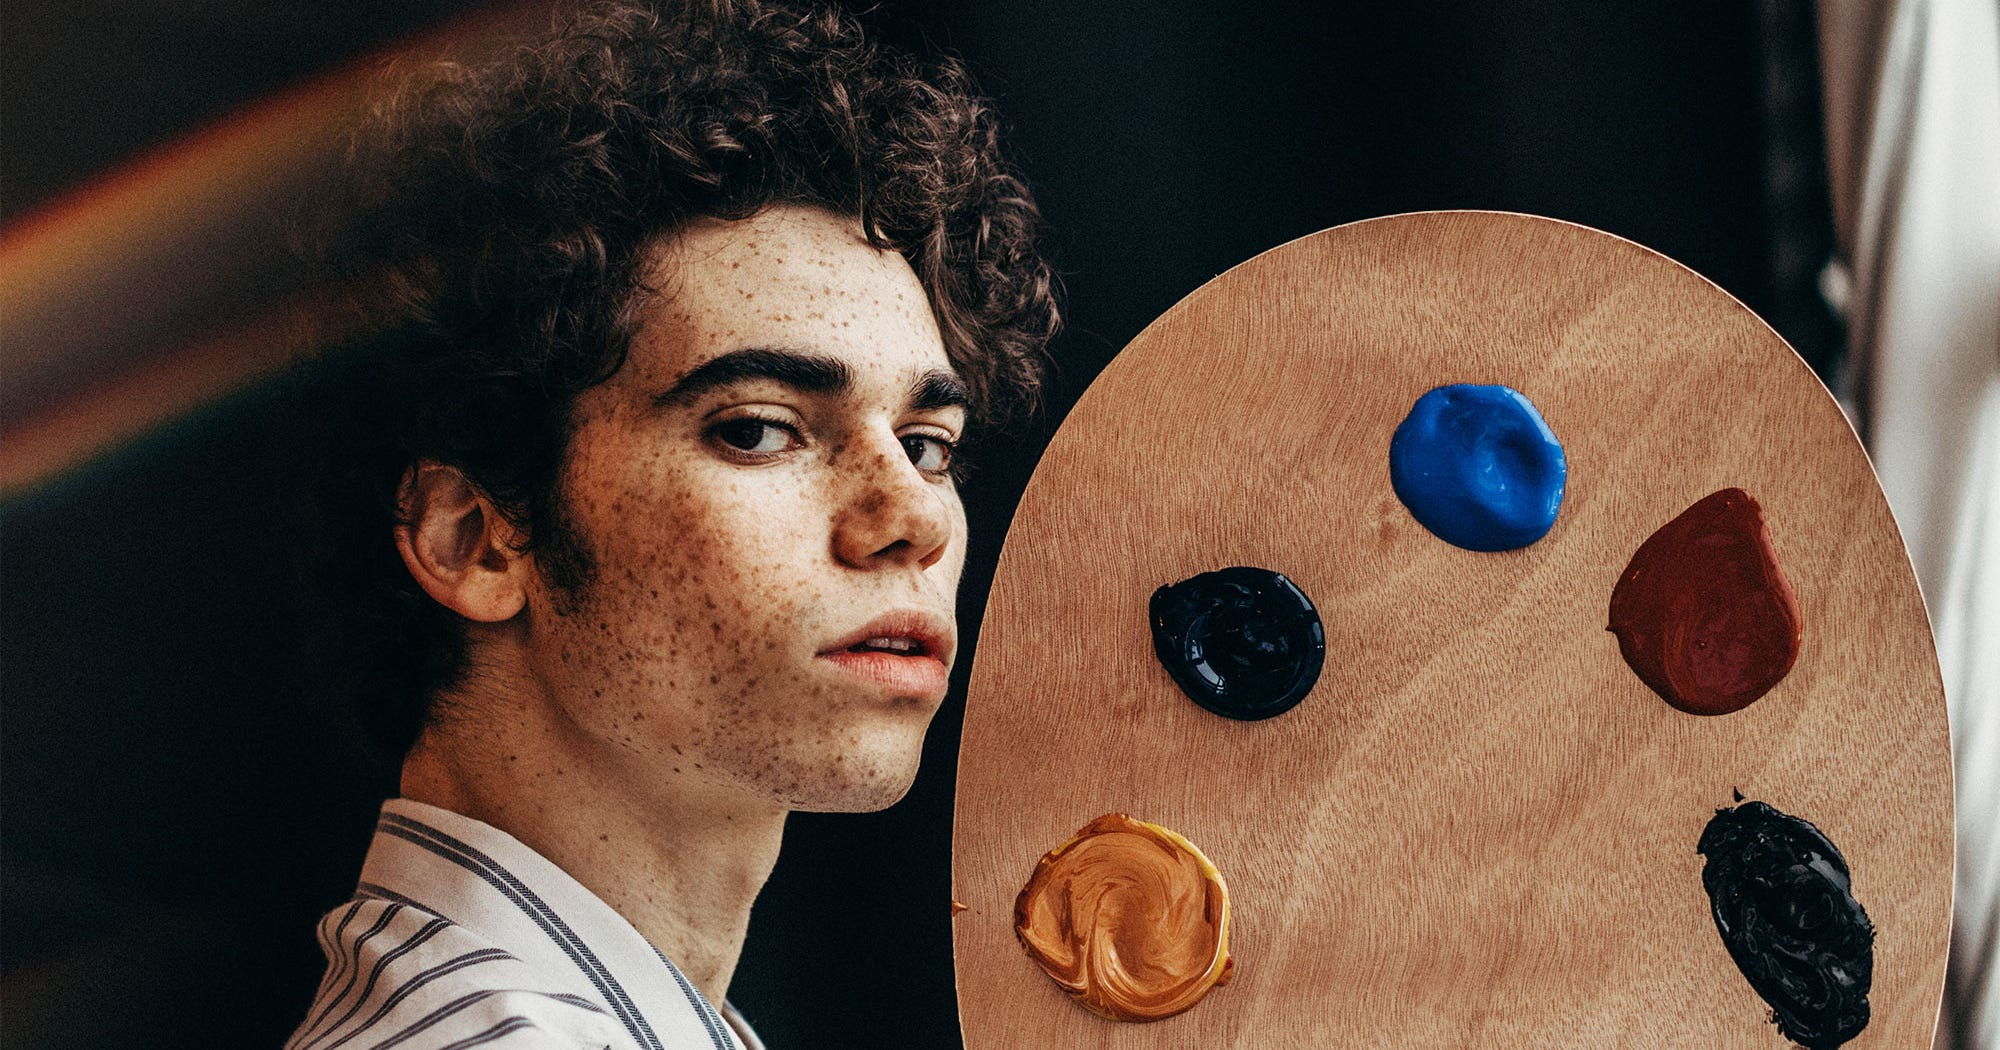 Cameron Boyce's Final Project Asks Us To Wield Peace, Not Guns